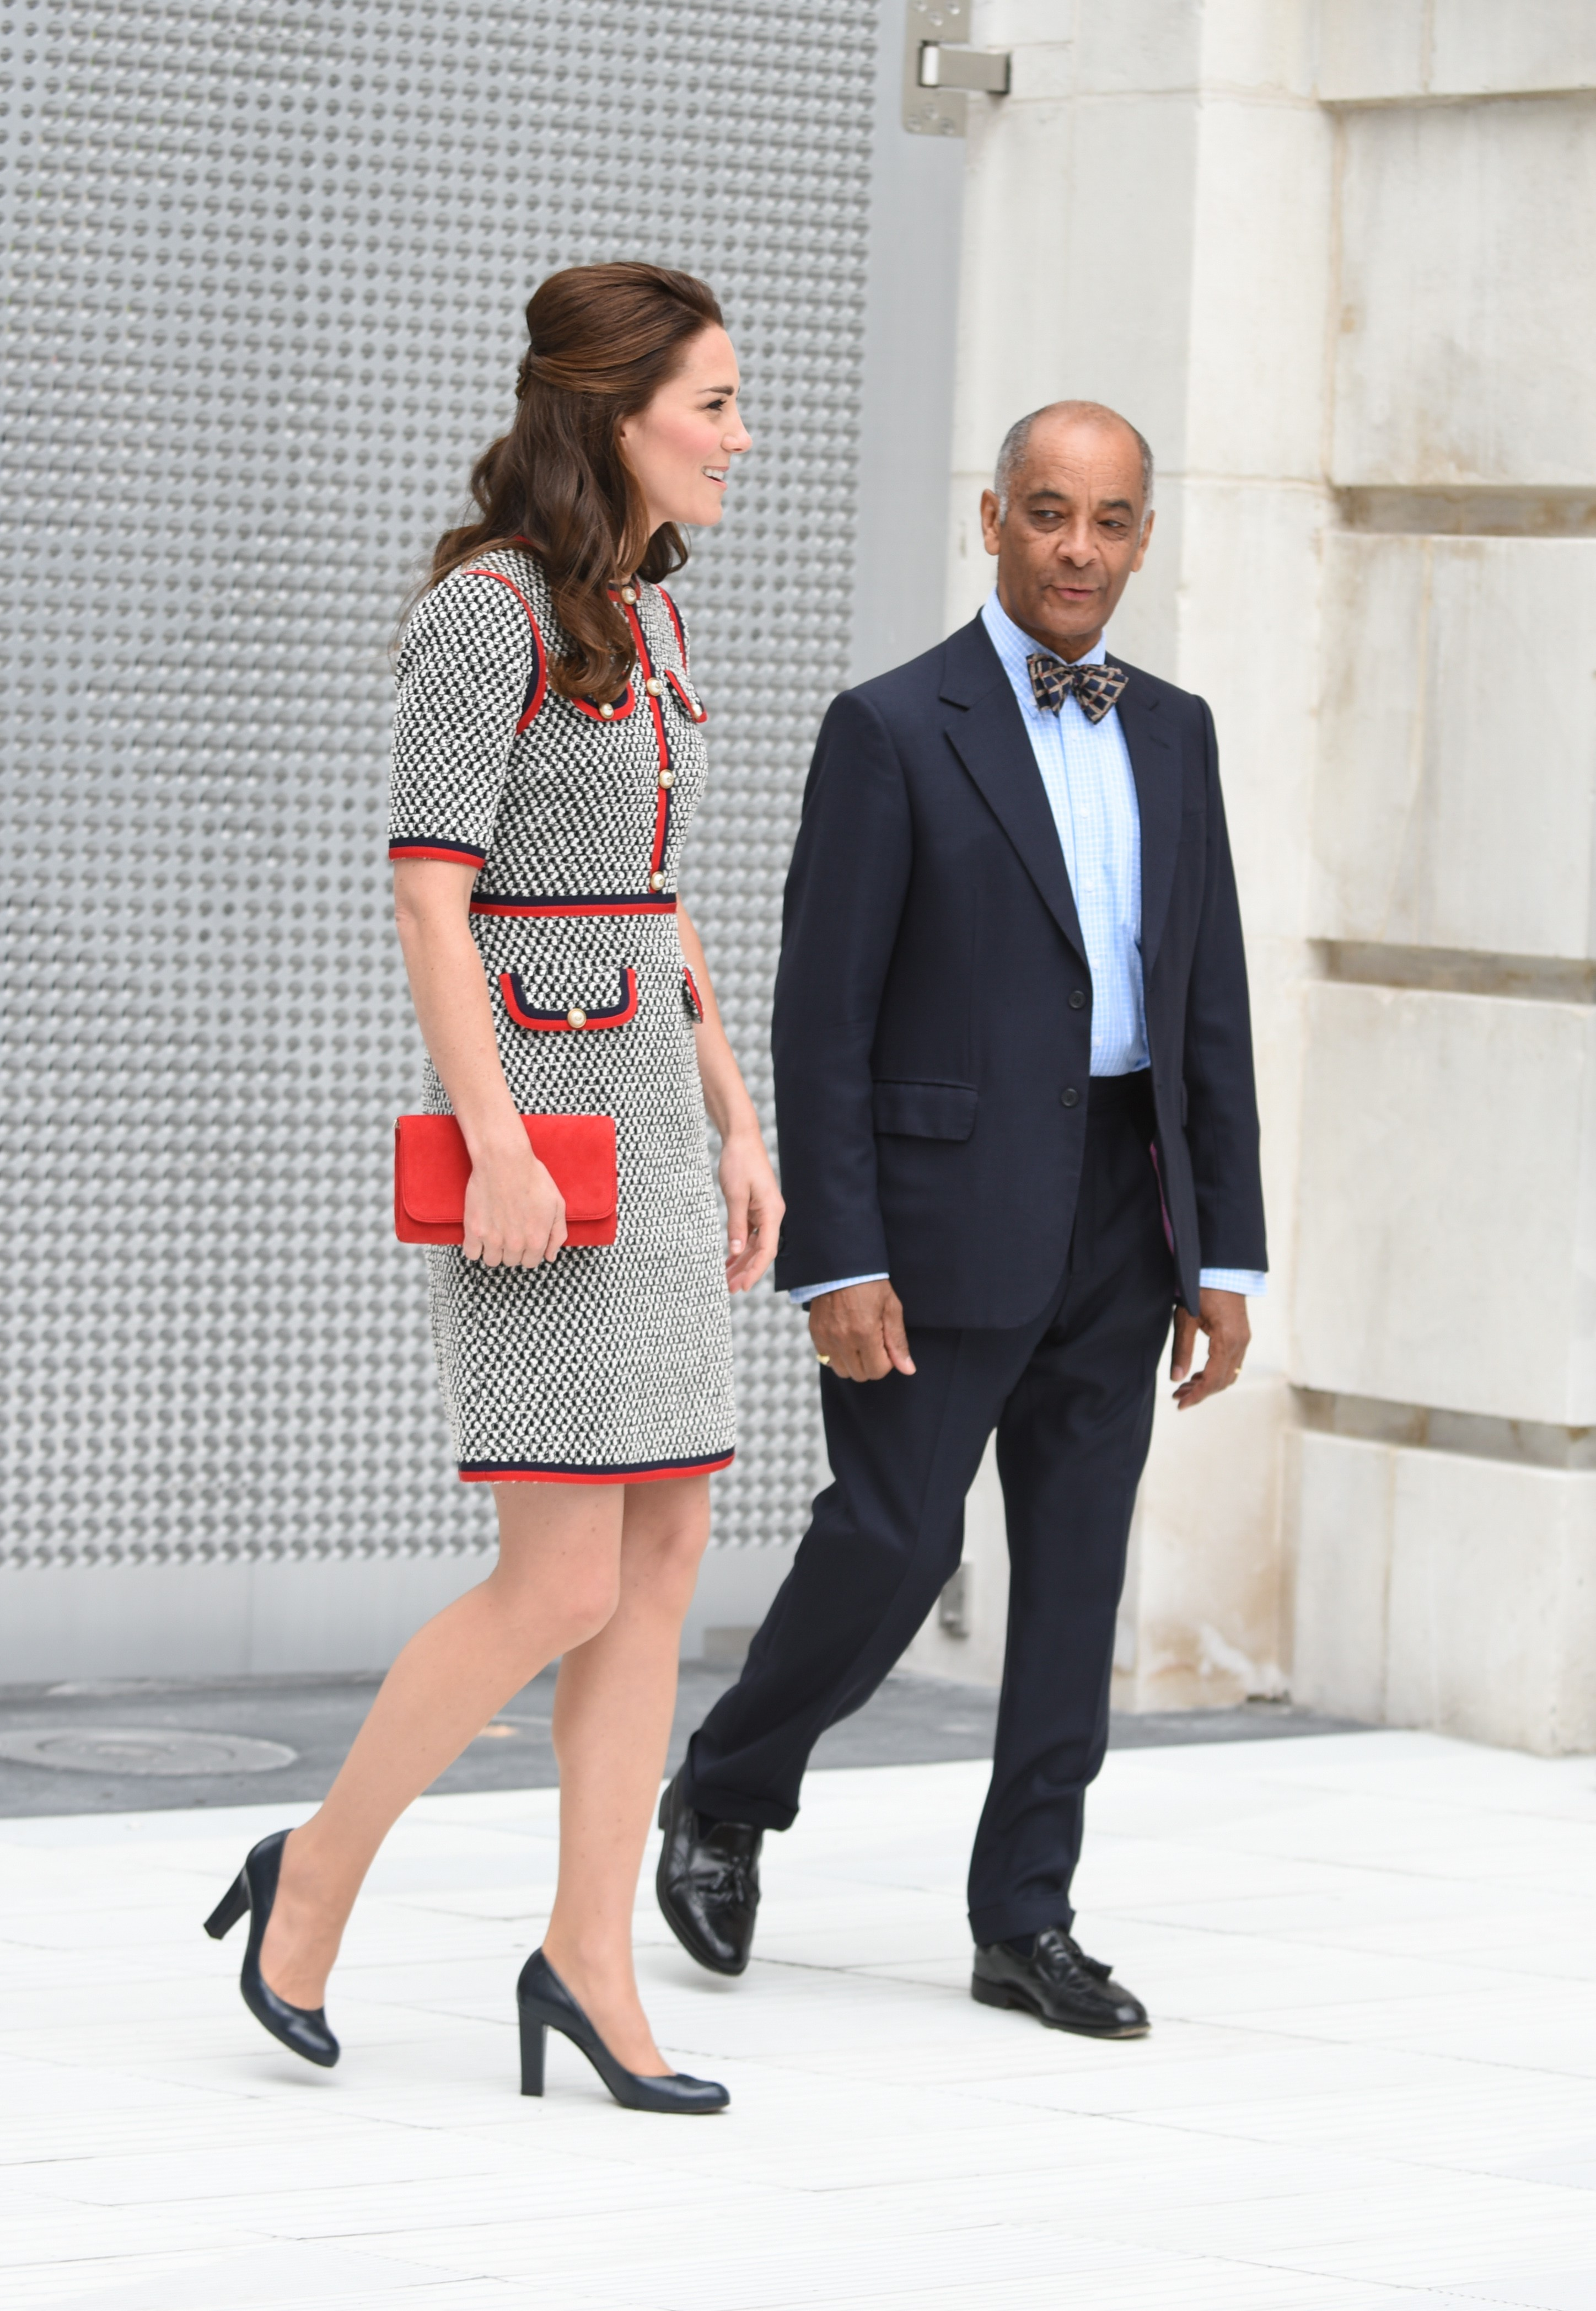 Kate Middleton elege look Gucci para visita ao V&A em Londres (Foto: Getty Images)